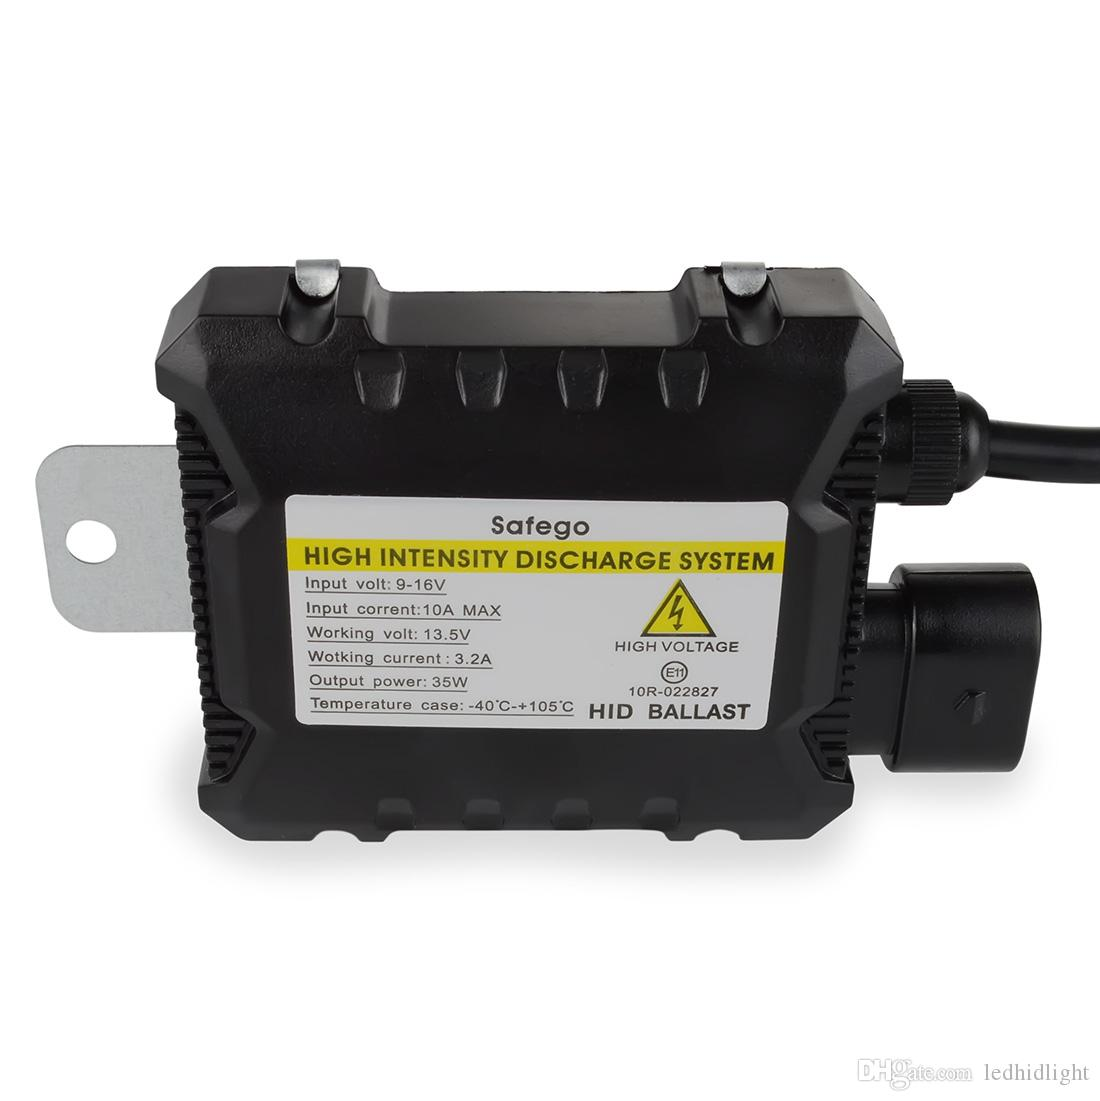 1 X DC 12V 35W Xenon Replacement Ballast Slim Ignition Cheap Block Match Hid Bulb H1 H3 H4 H7 H8 H9 H11 9005 9006 Light Conversion Kits For